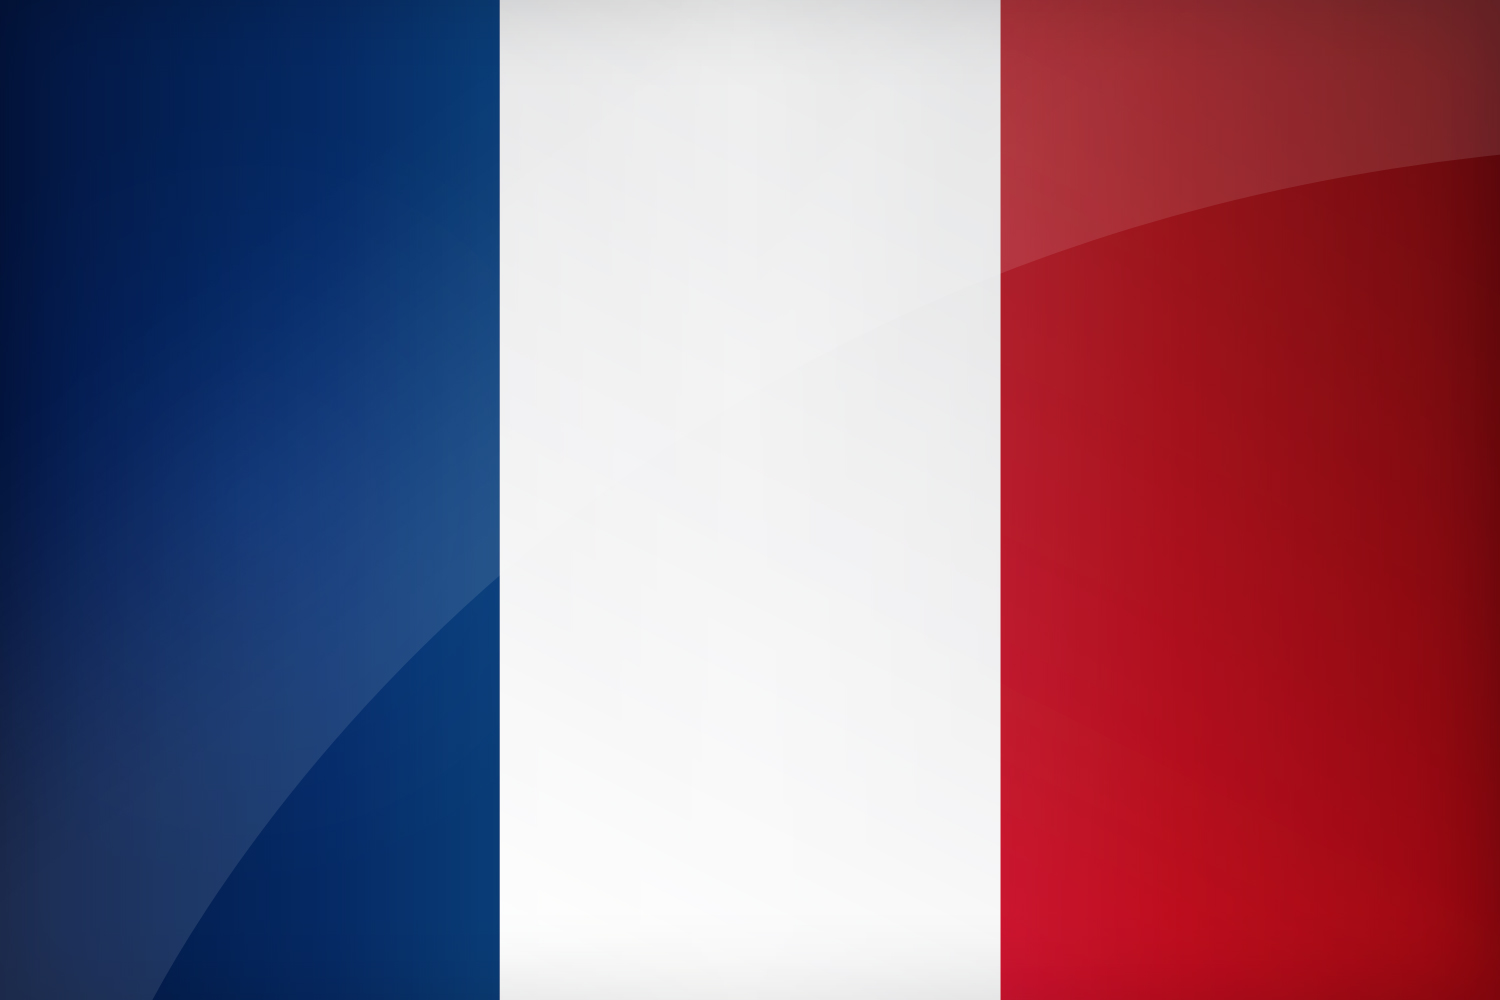 France Flag and Description